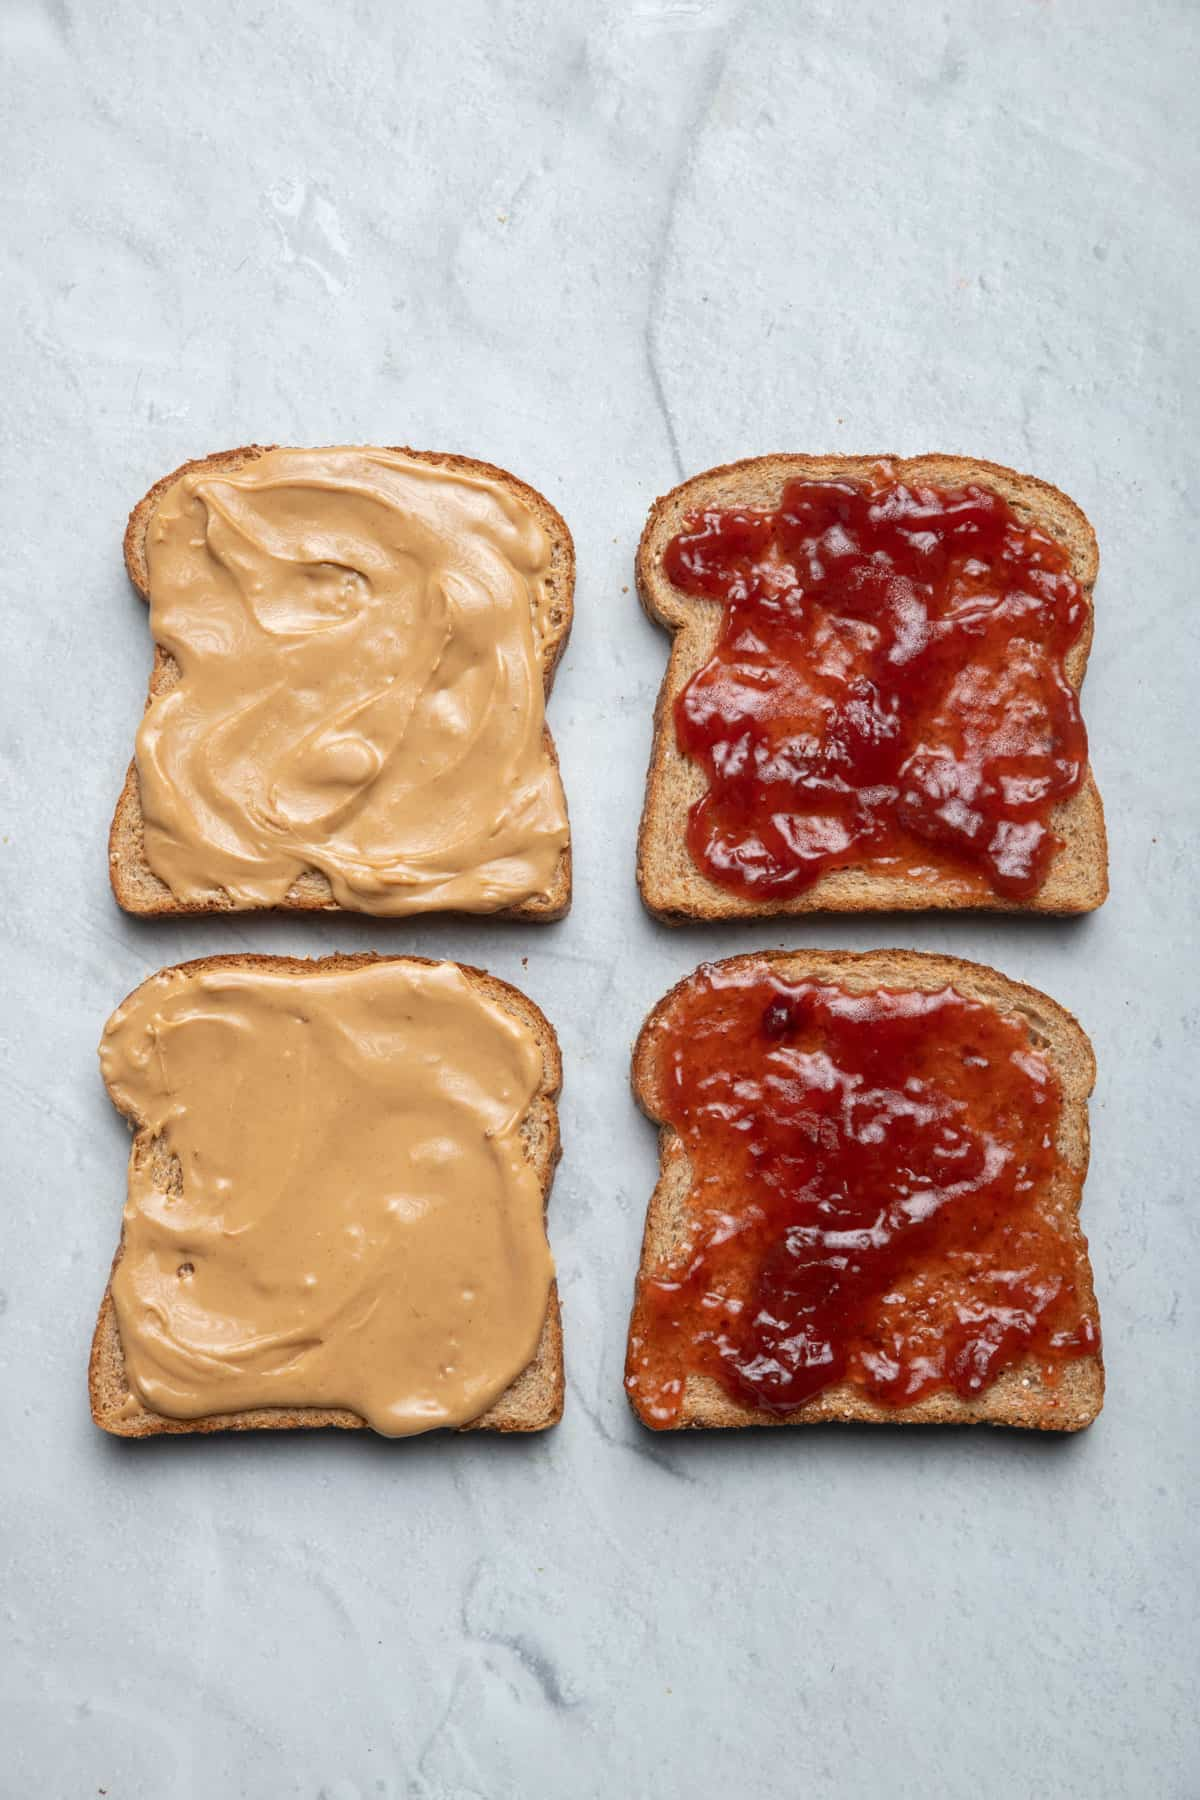 Four slices of bread with peanut butter and jelly on them